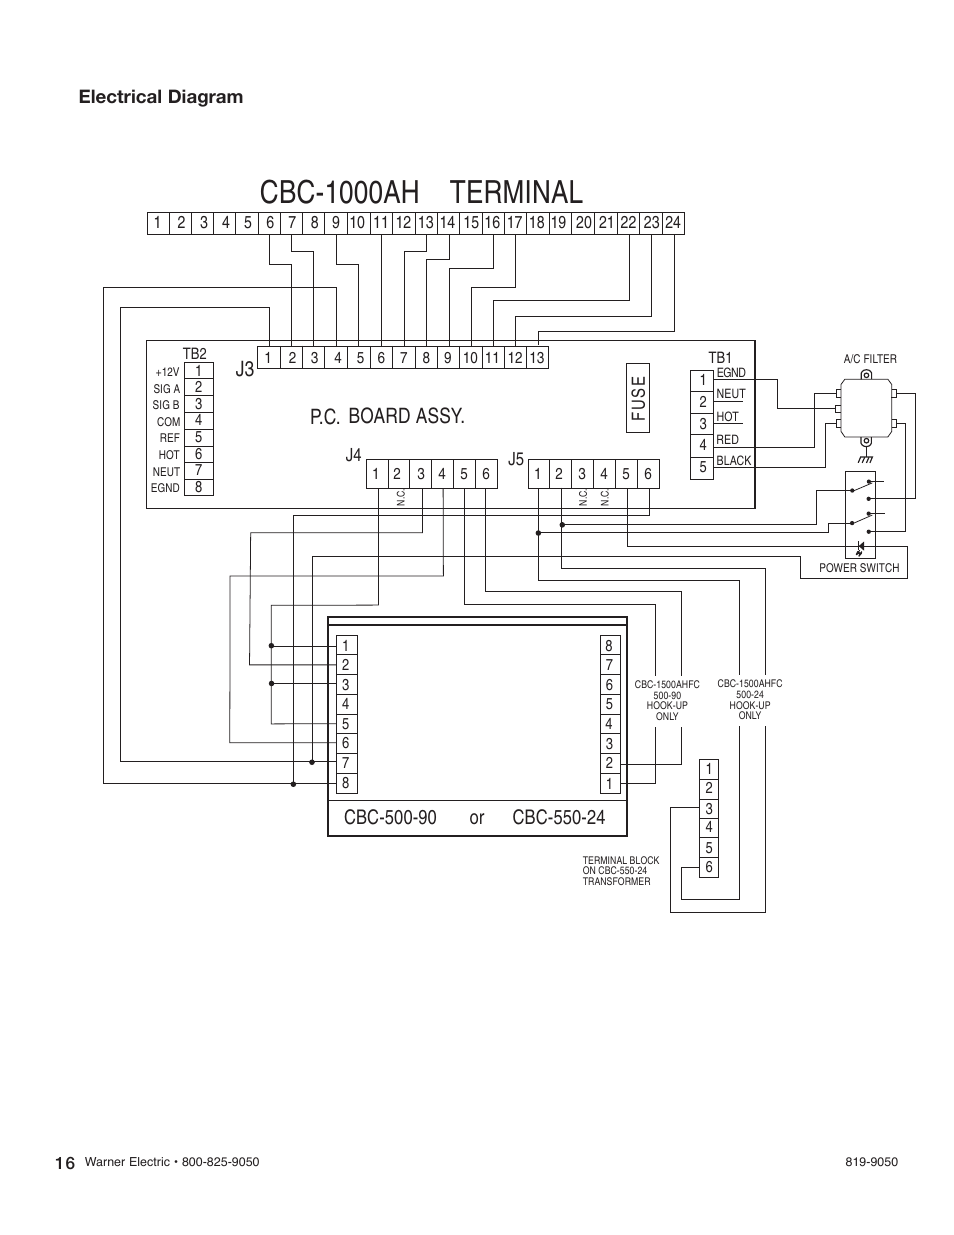 medium resolution of cbc 1000ah terminal p c board assy electrical diagram warner electric cbc 1550ahfc user manual page 16 22